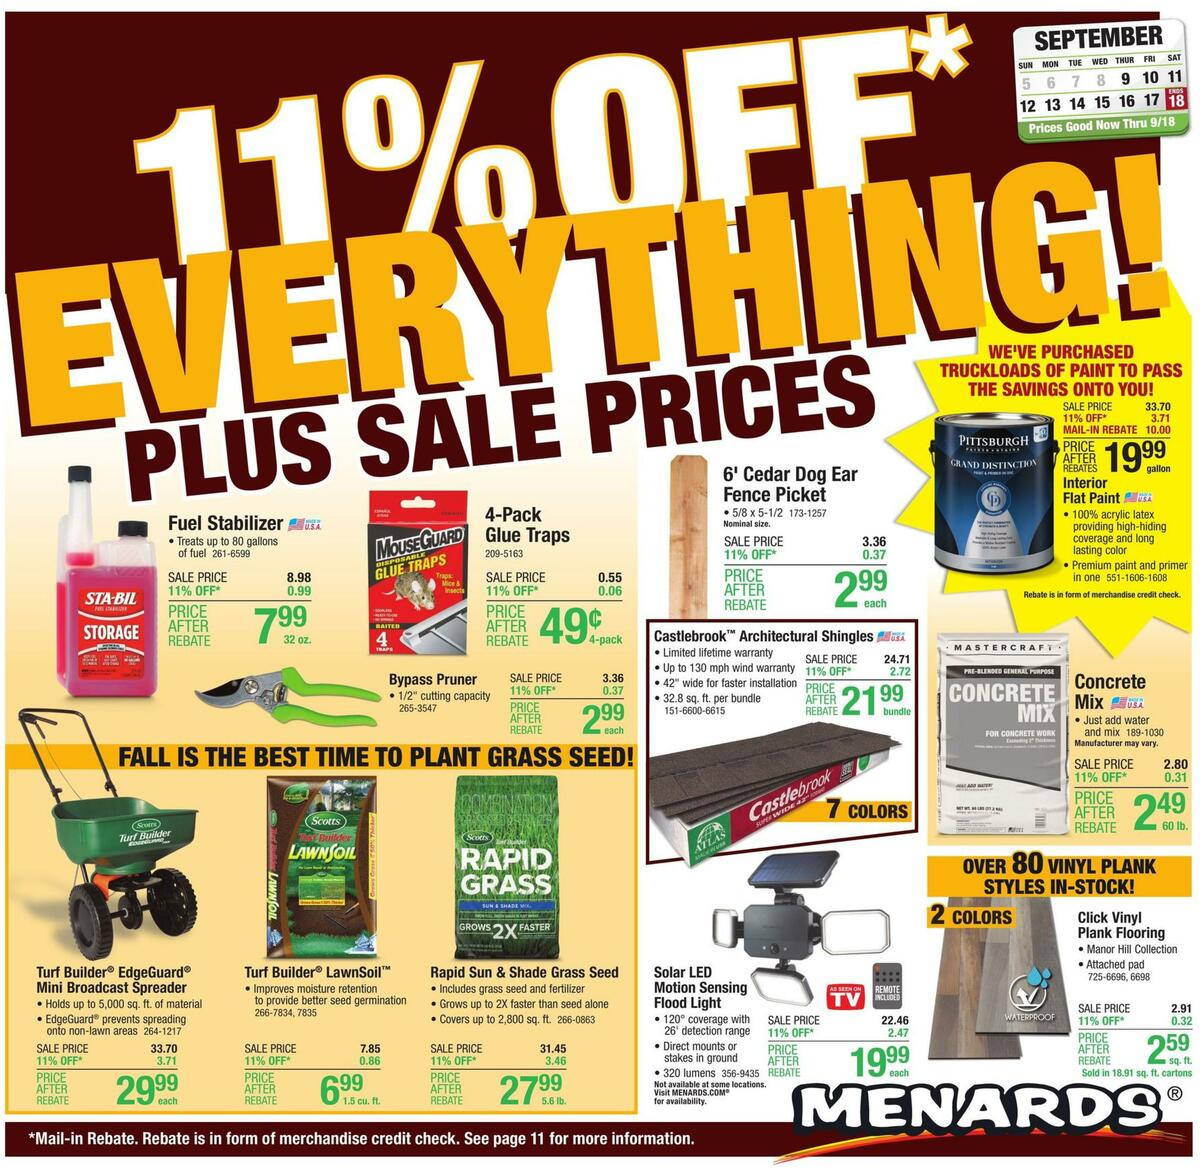 Menards Weekly Ad from September 9